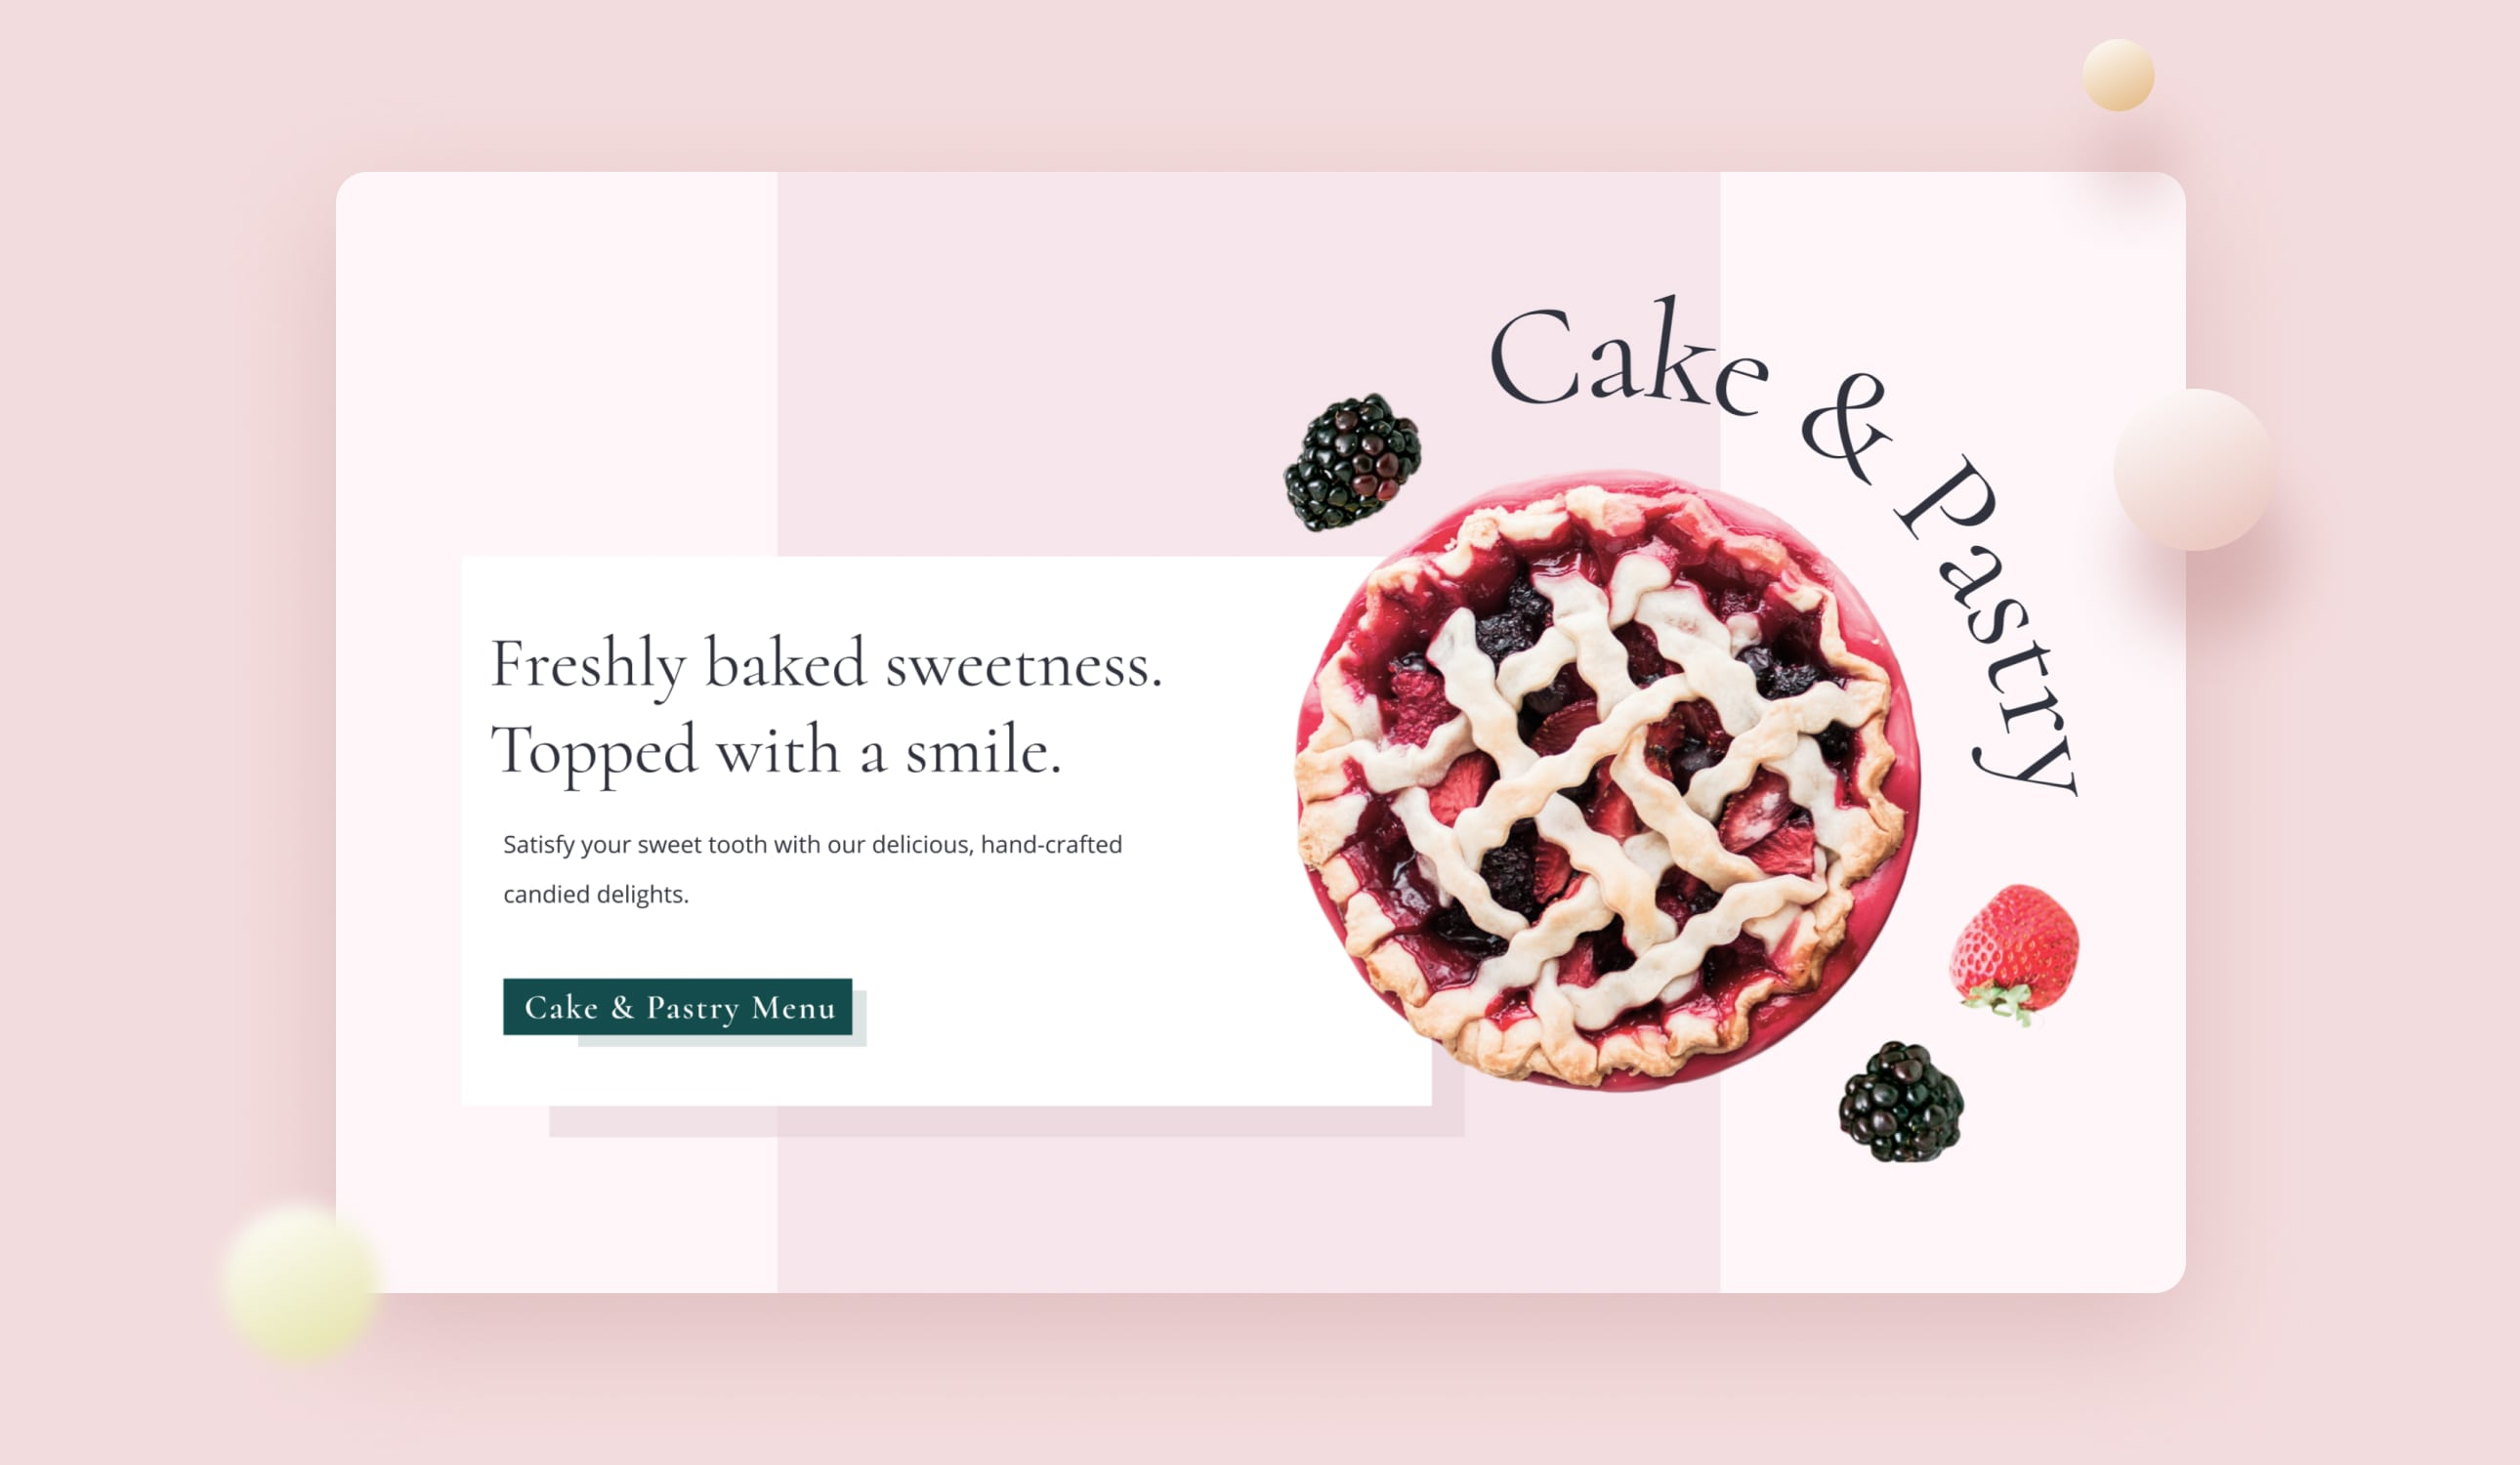 A previed of a cake & pastry menu with a blueberry pie.